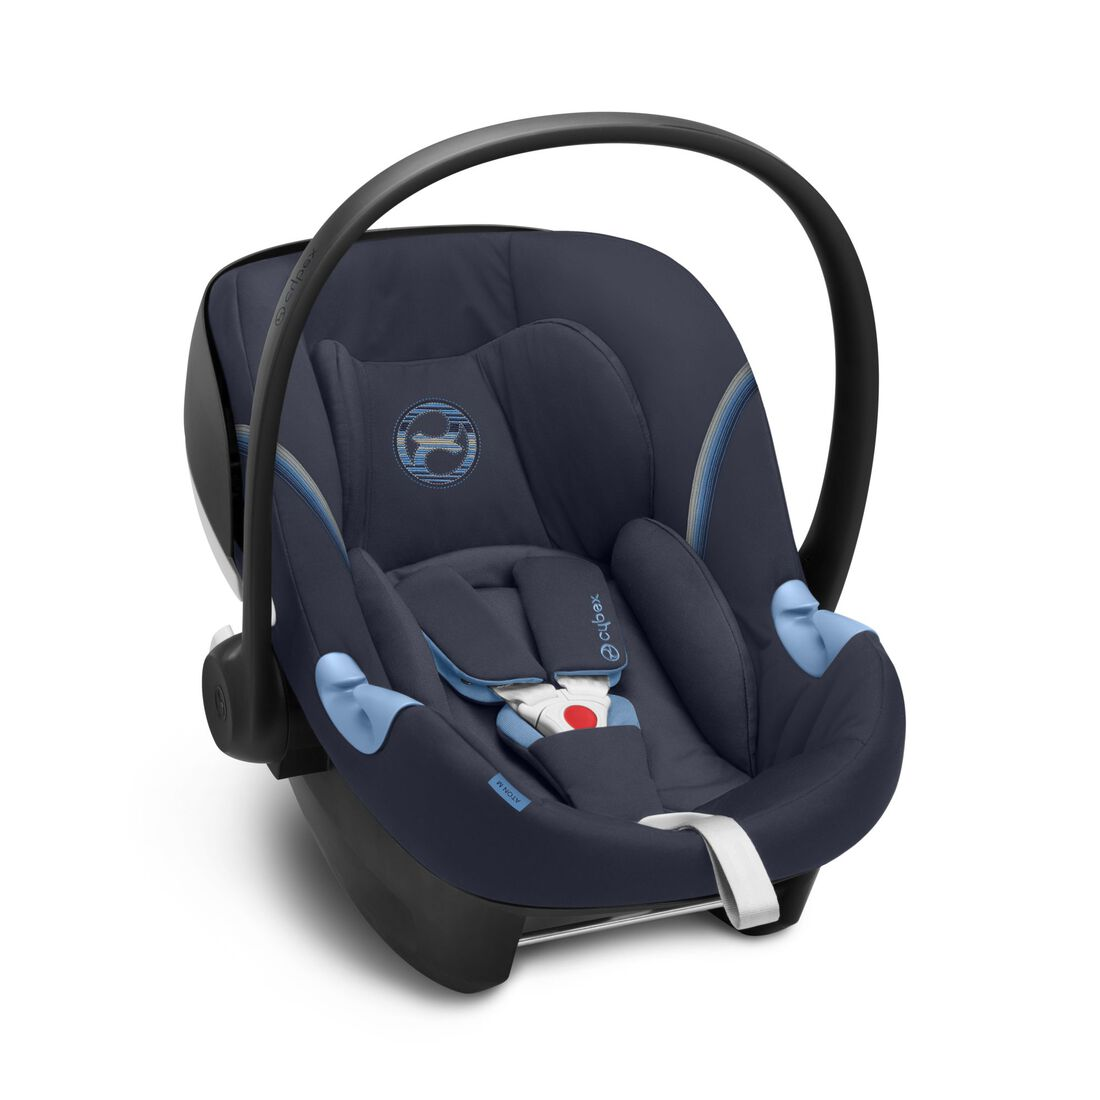 CYBEX Aton M i-Size - Navy Blue in Navy Blue large